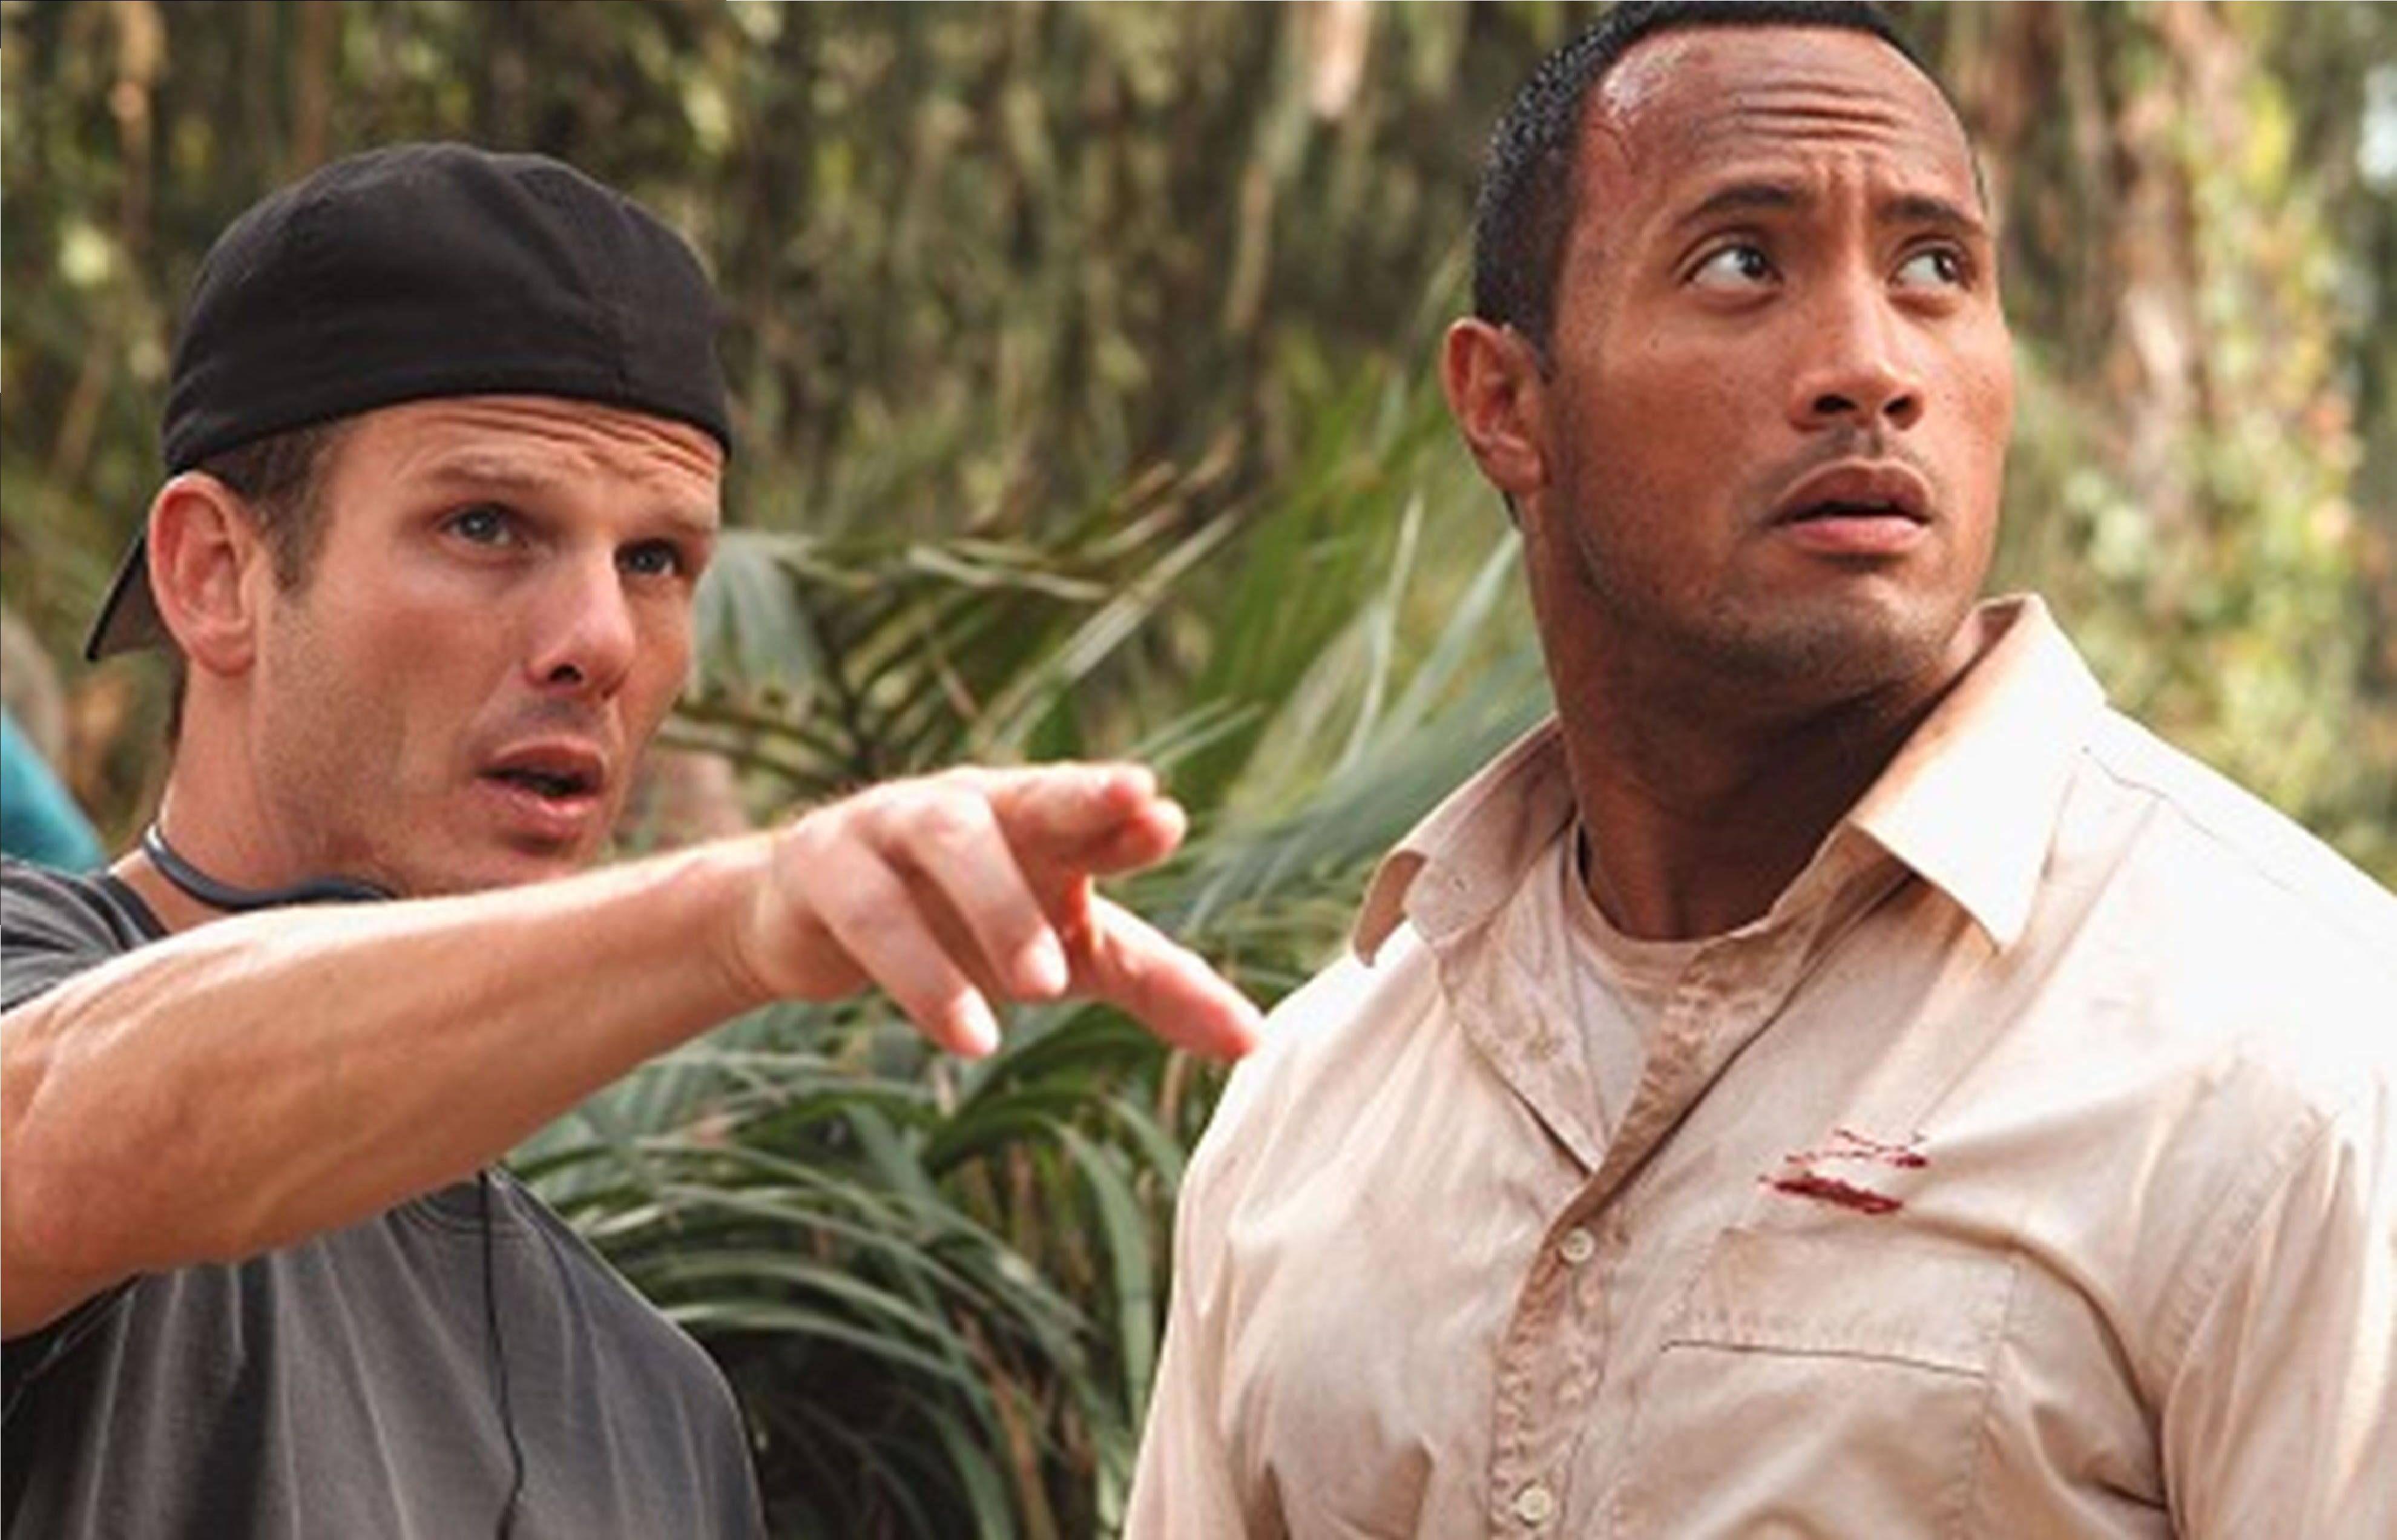 The Rundown 2 Peter Berg Wants Jonah Hill, Dwayne Johnson